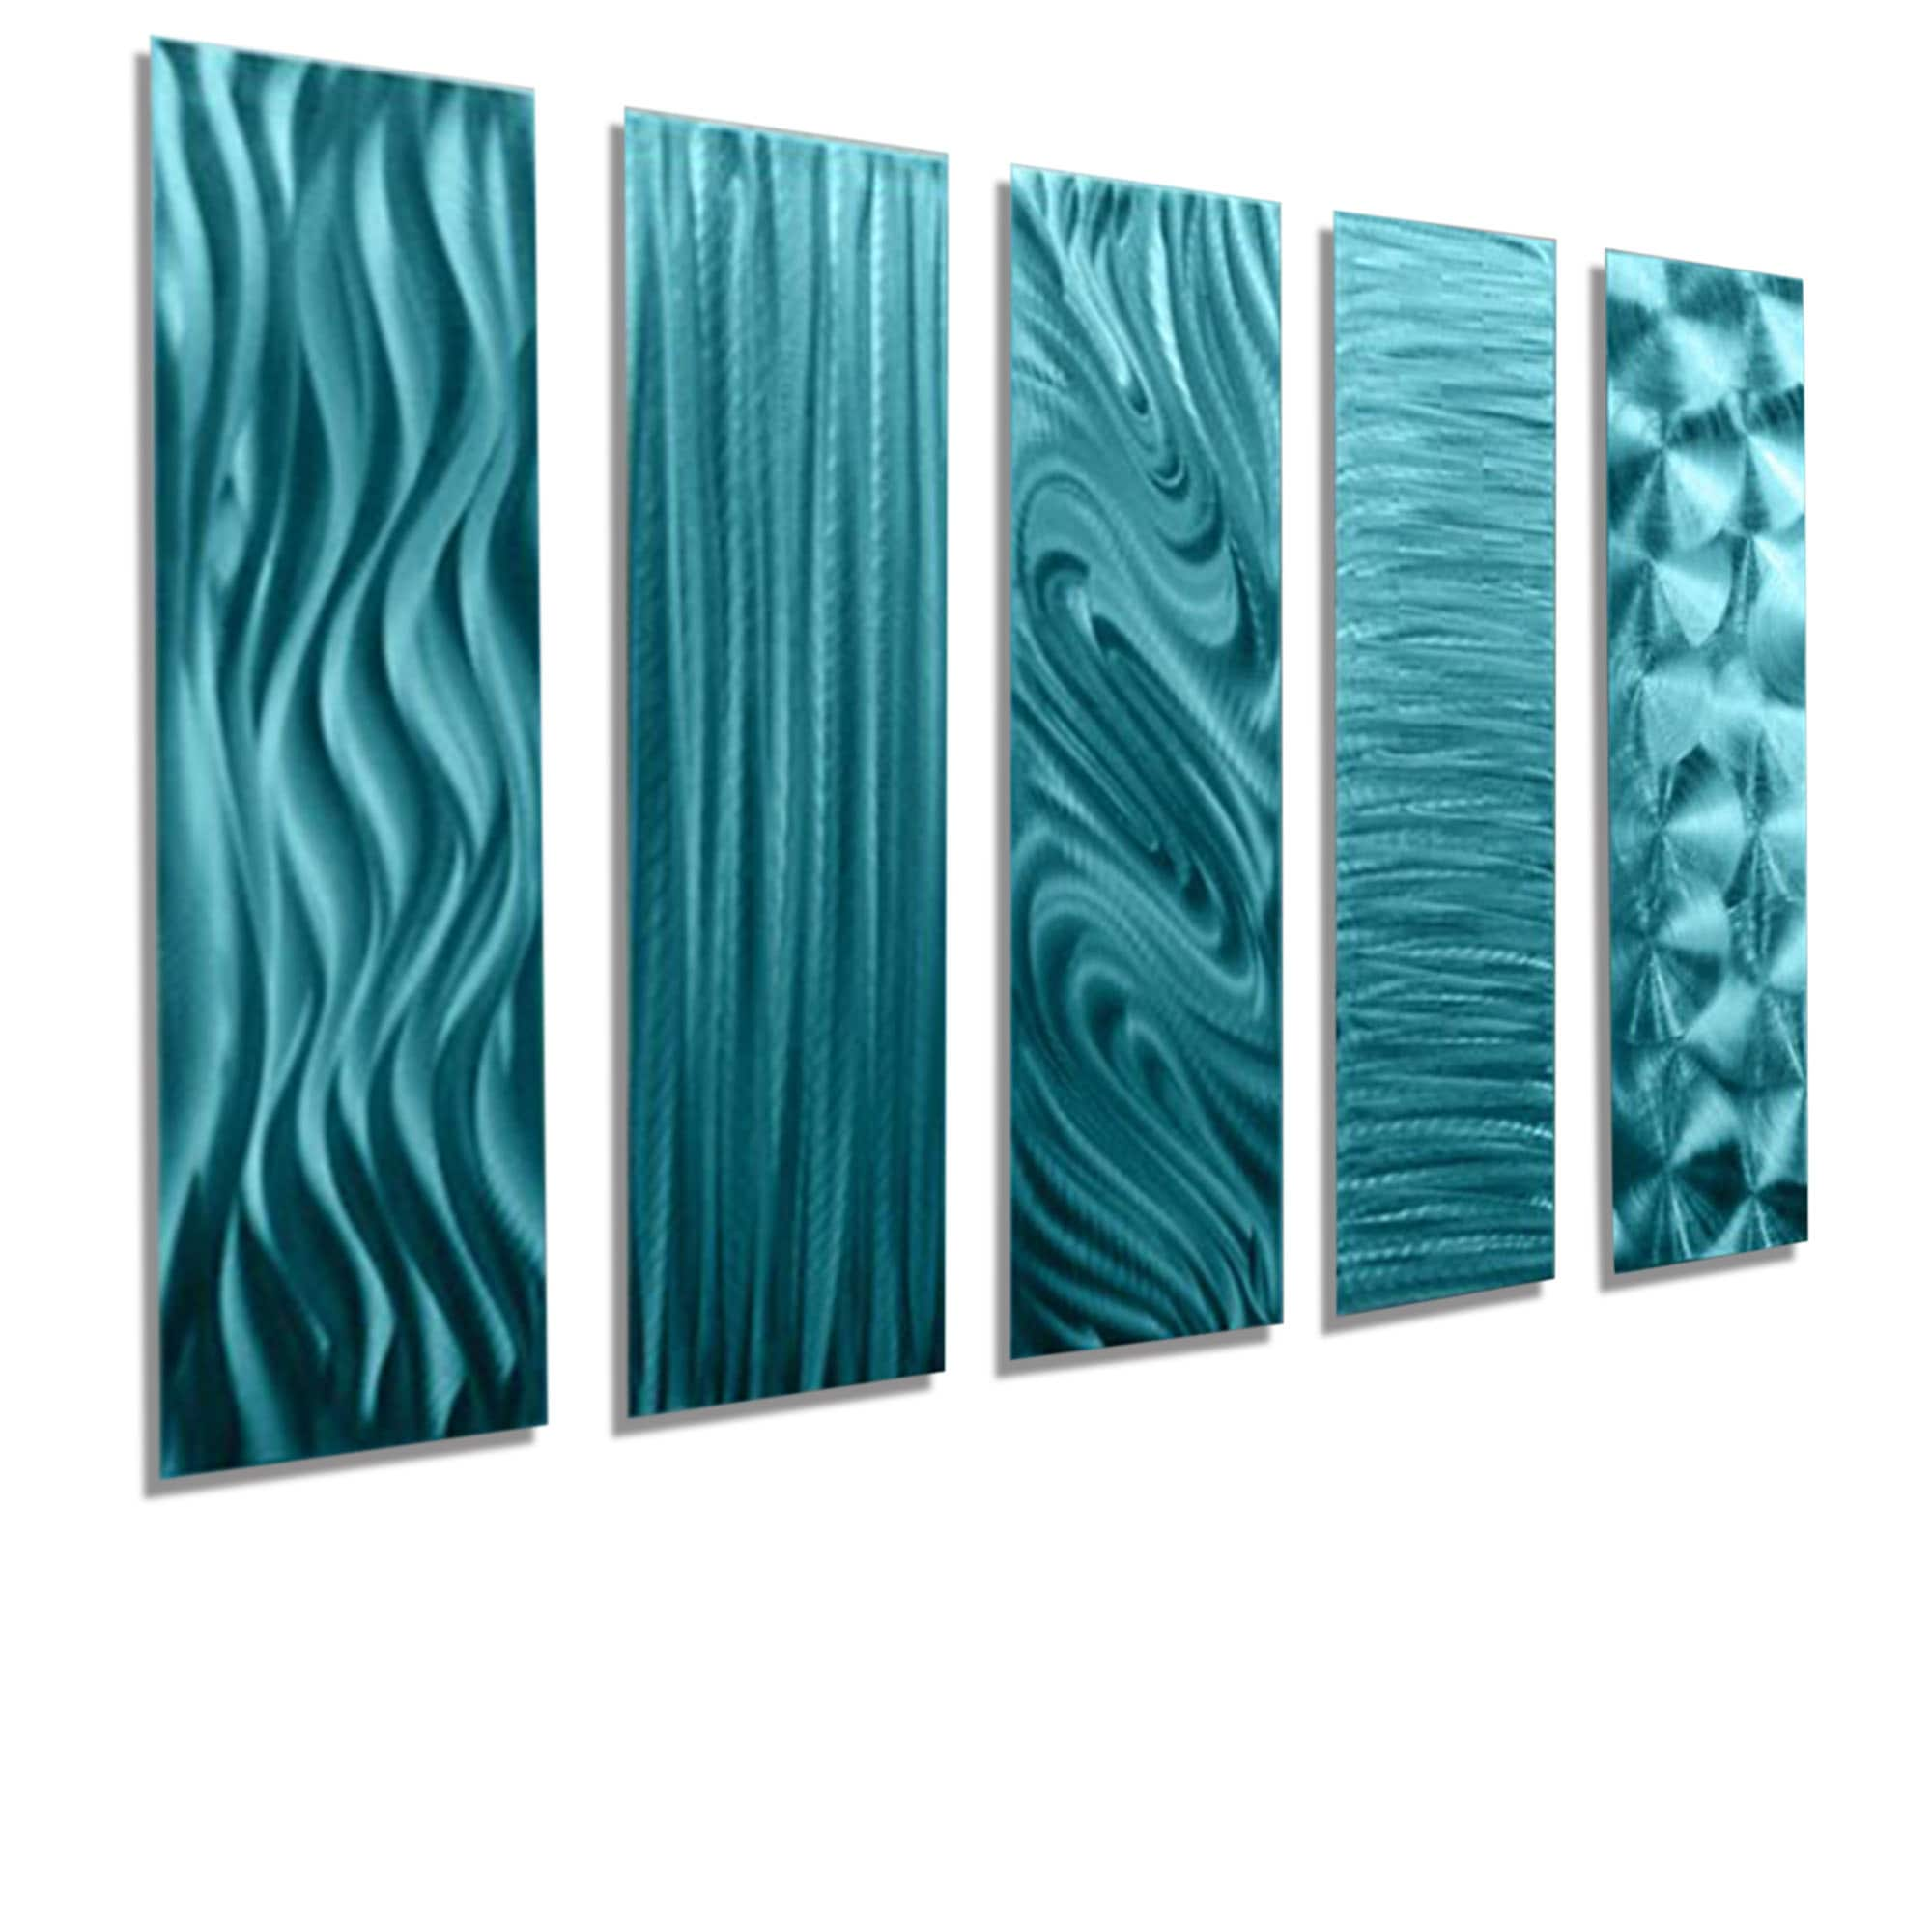 Blue Metal Wall Art Unique Statements2000 Set Of 5 Aqua Blue Metal Wall Art Accentsjon Design Ideas